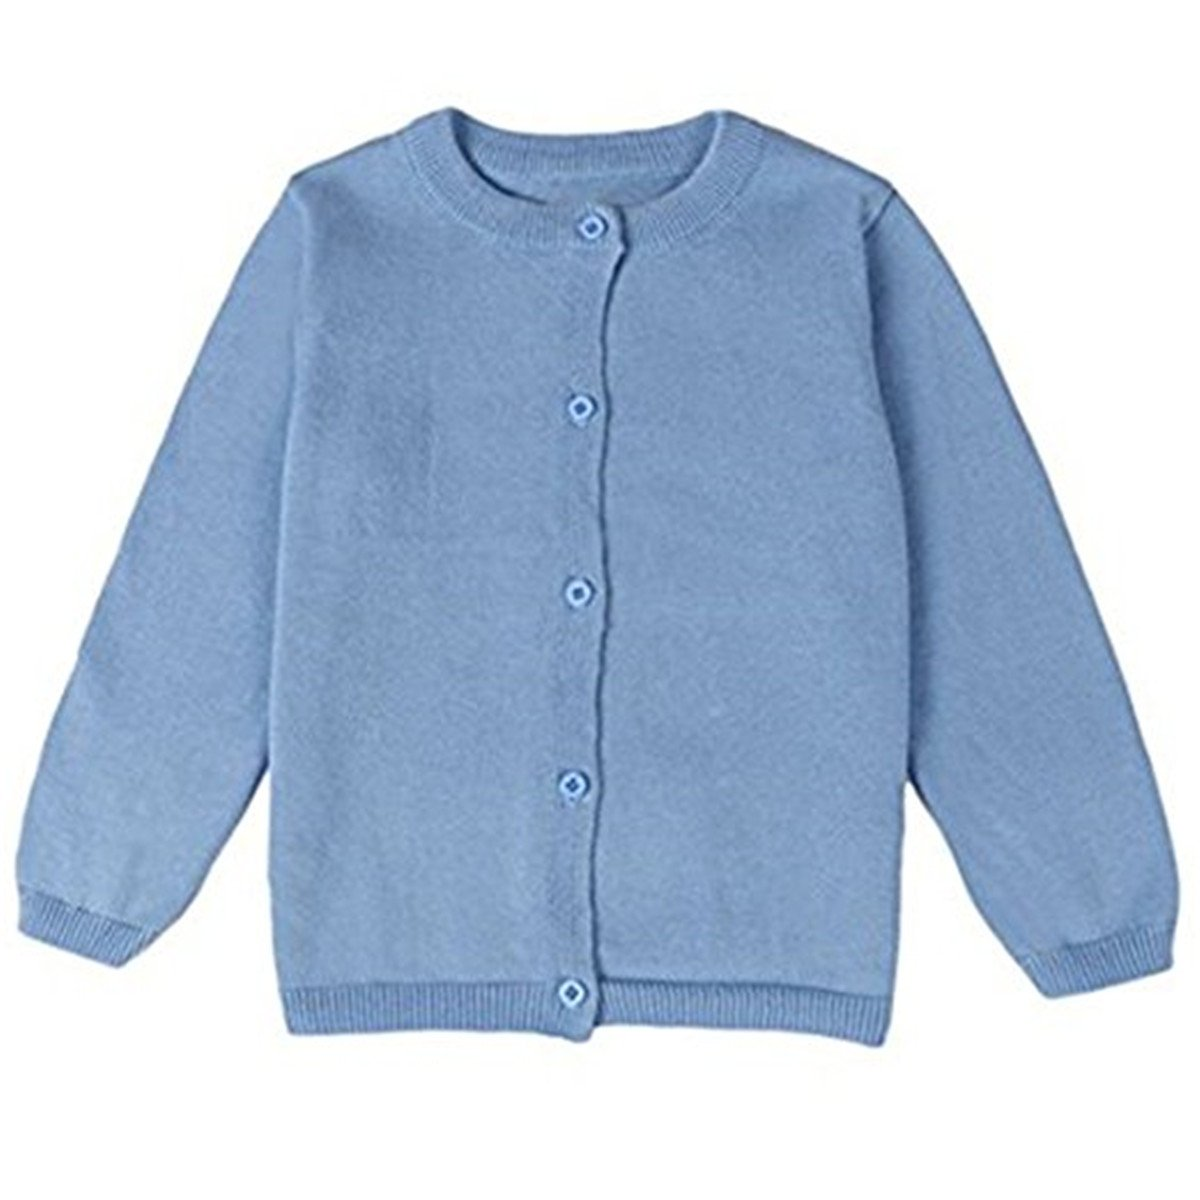 JELEUON Little Girls Cute Crew Neck Button-Down Solid Fine Knit Cardigan Sweaters 5-6 Years